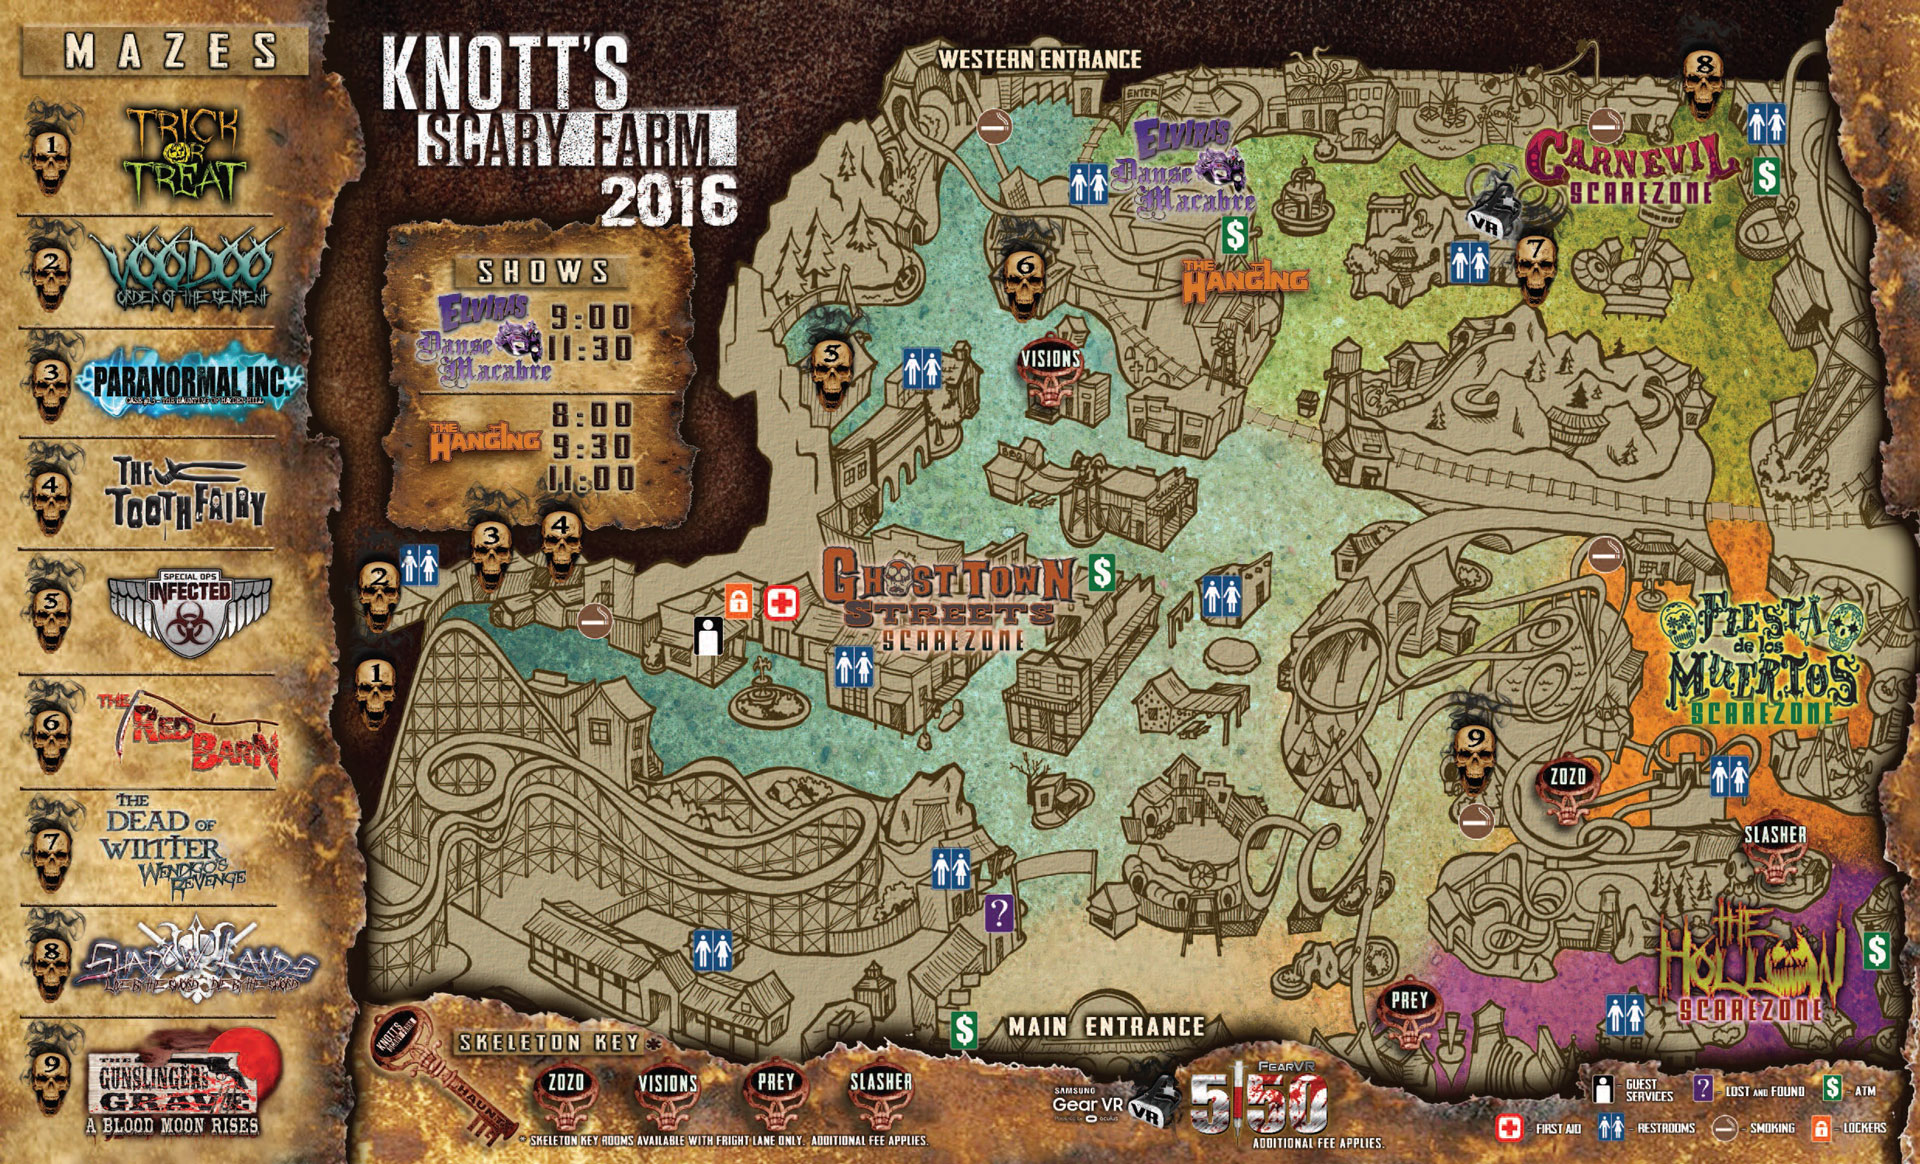 Knotts scary farm discount coupons